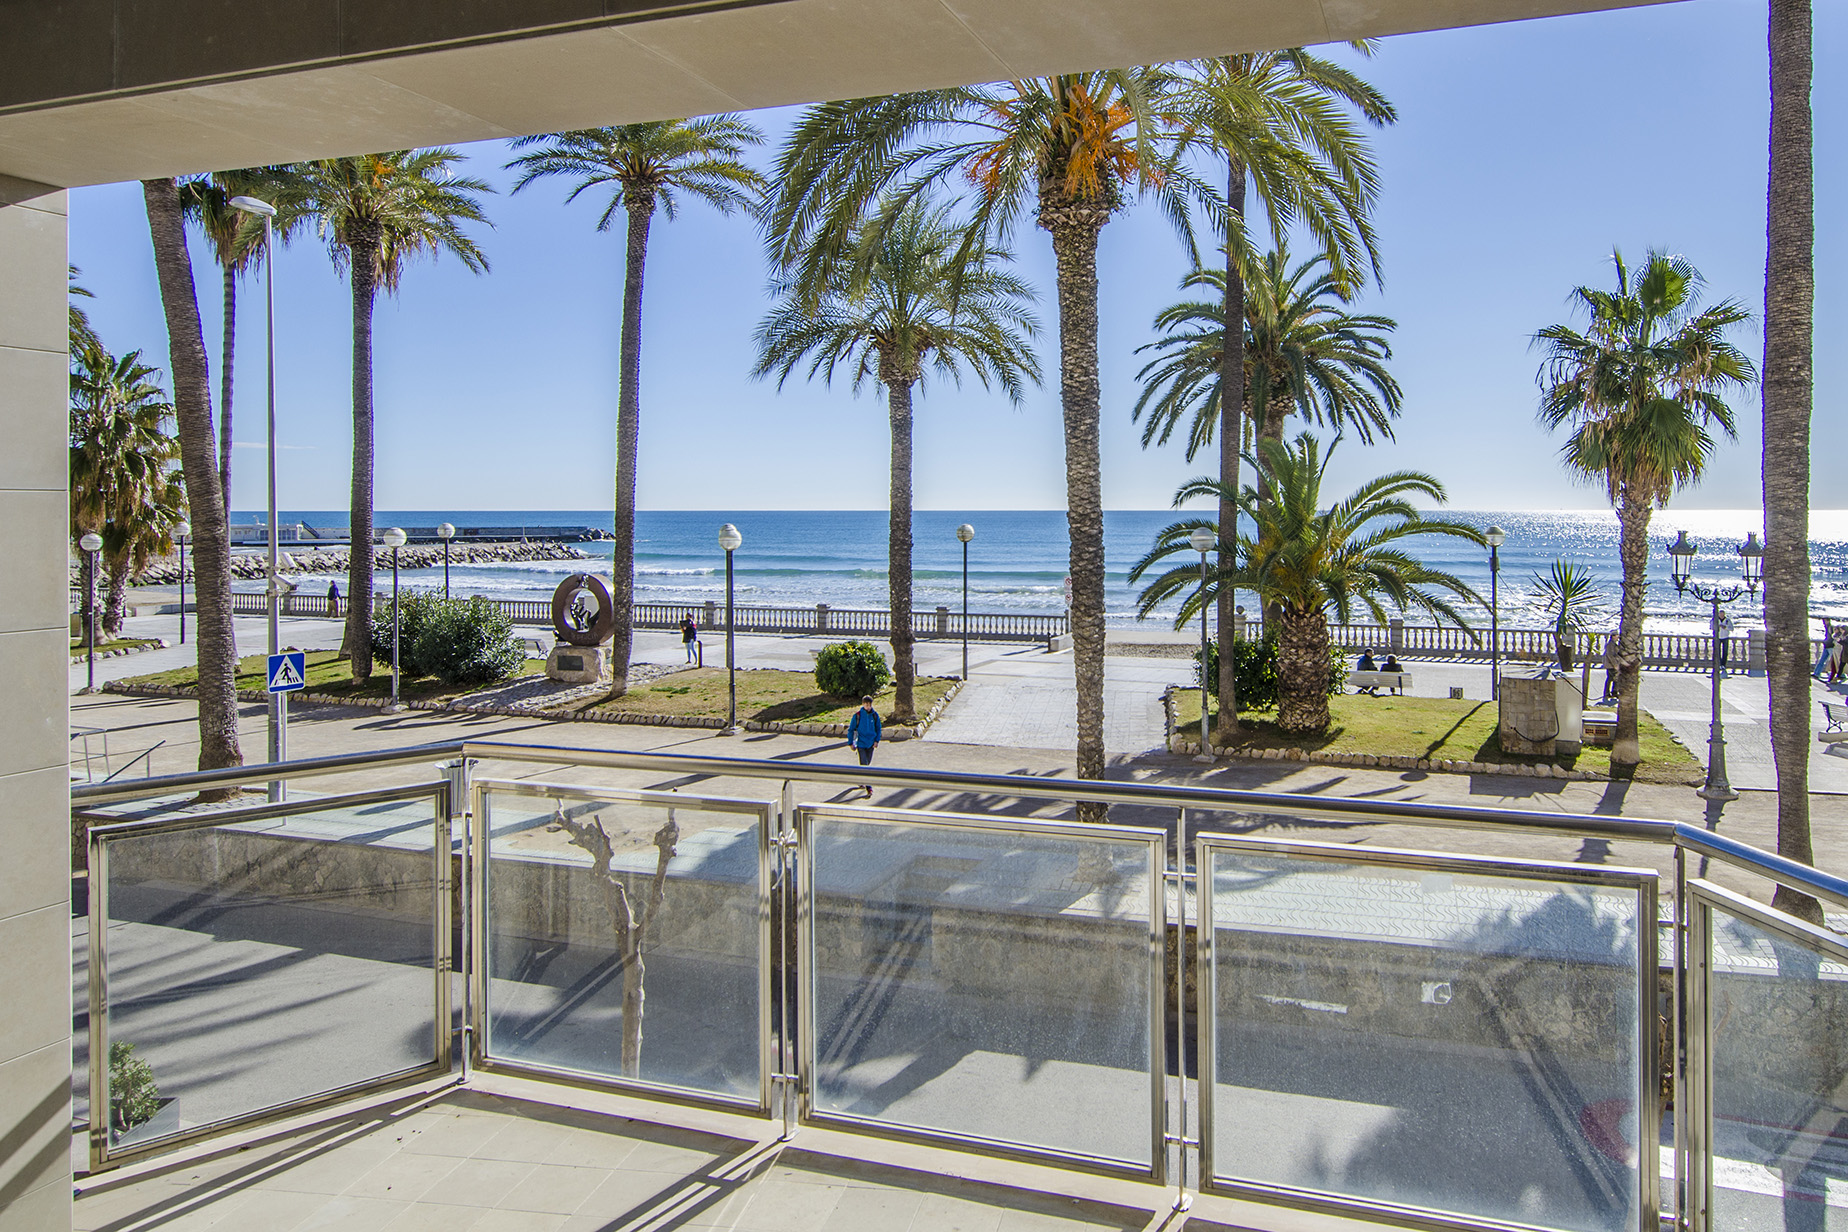 Appartement pour l Vente à Fantastic apartment in front of the Sitges beach Sitges, Barcelona, 08870 Espagne